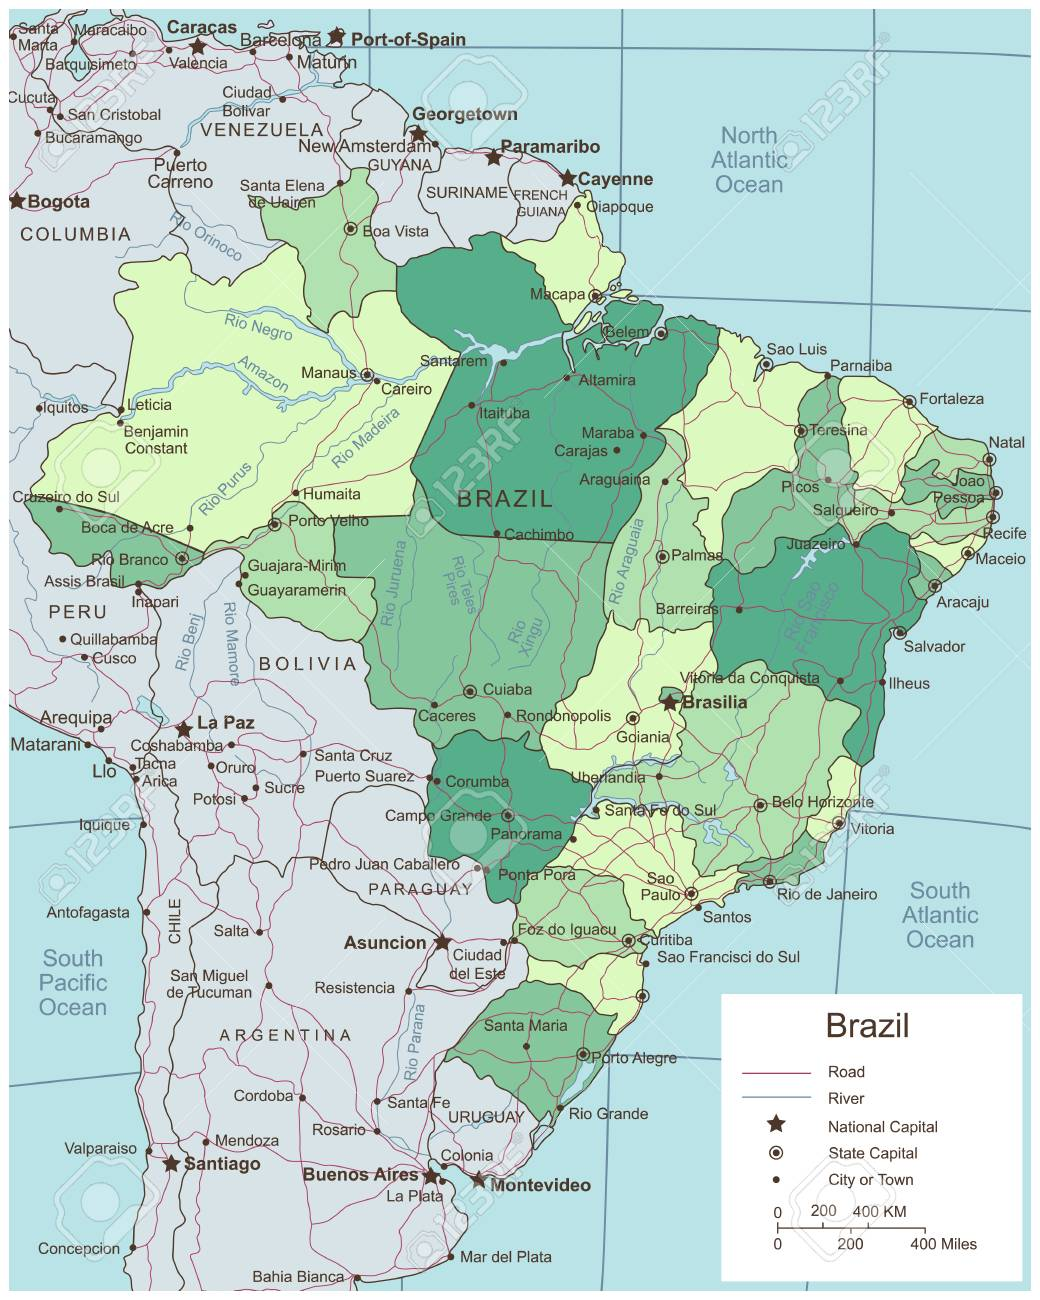 Brazil Political Map With Selectable Territories Vector Royalty - Brazil political map